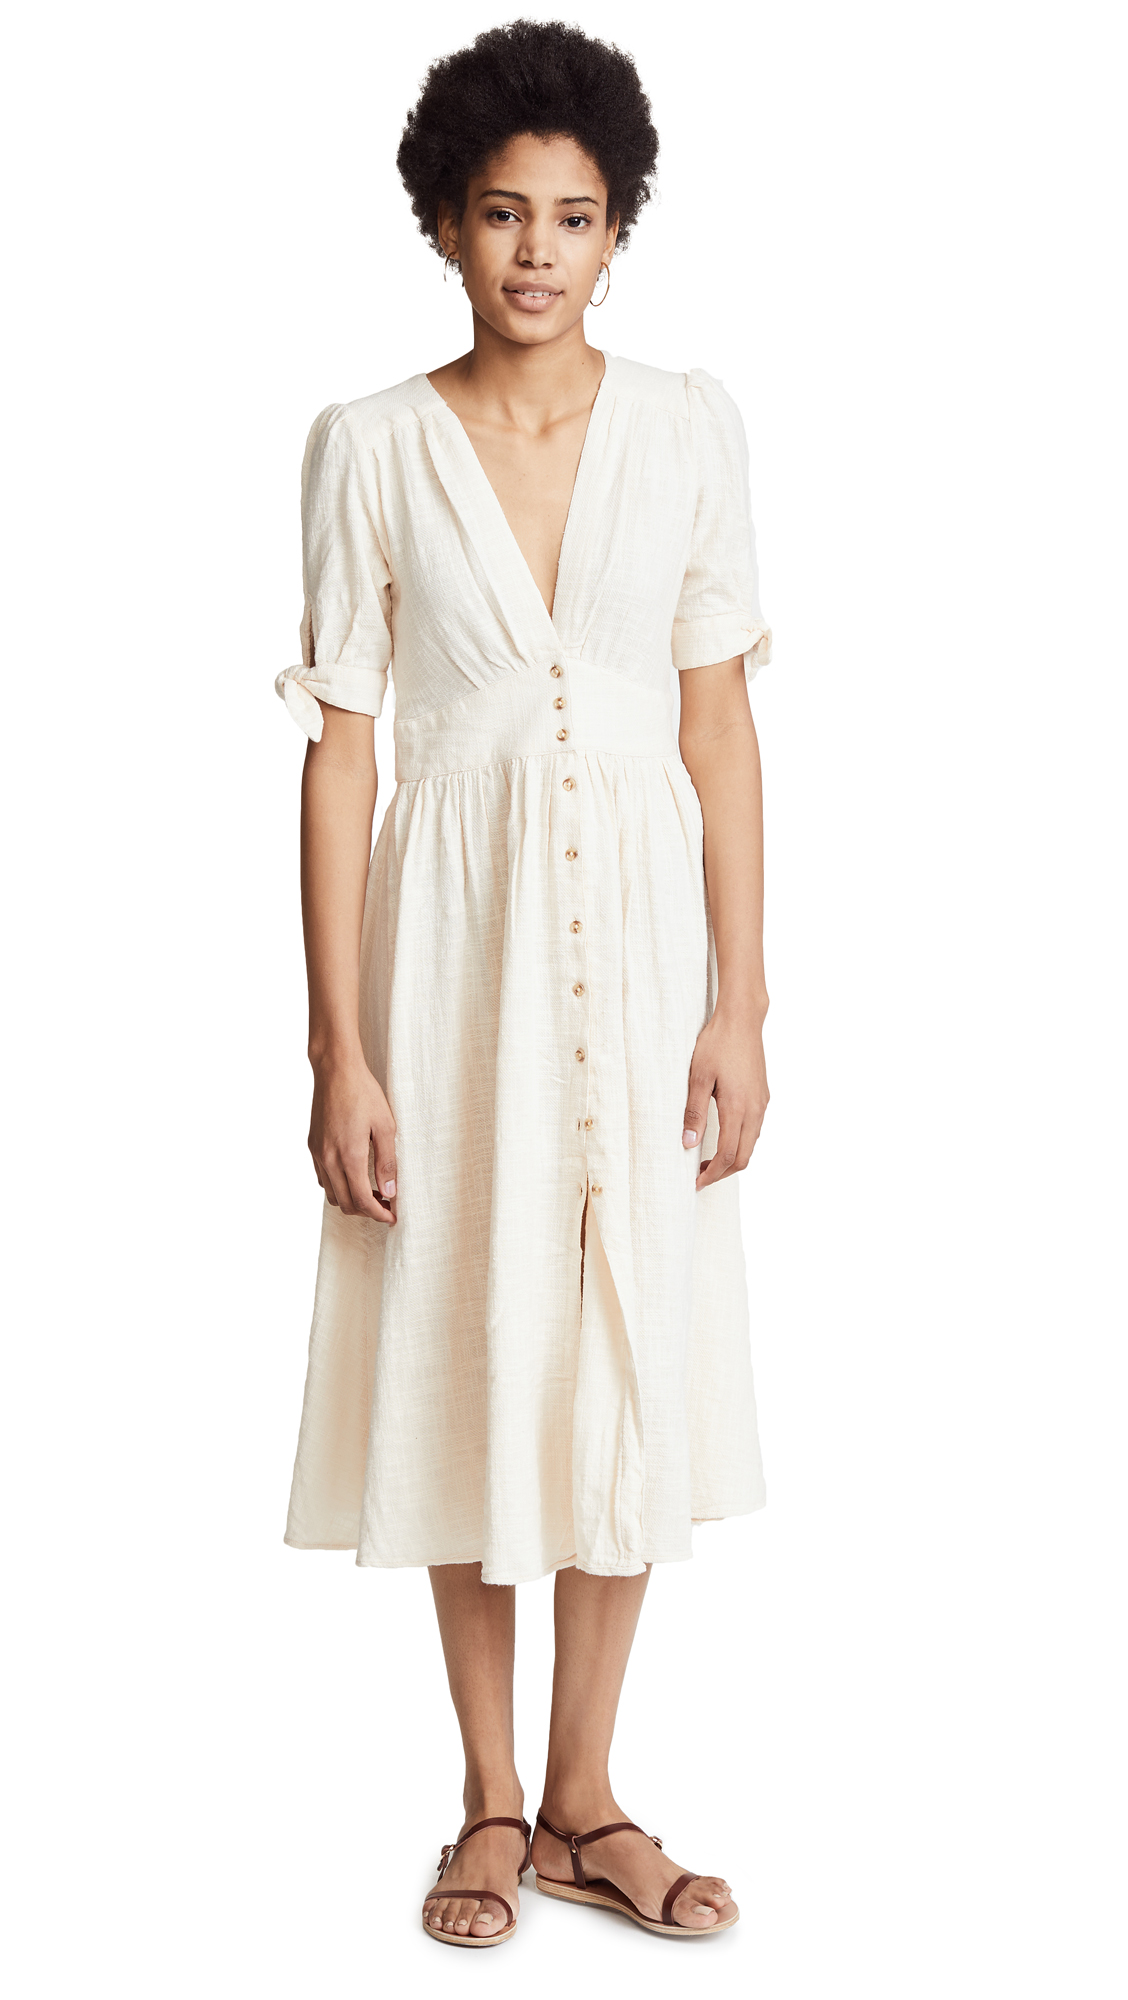 Free People Love Of My Life Dress - Ivory